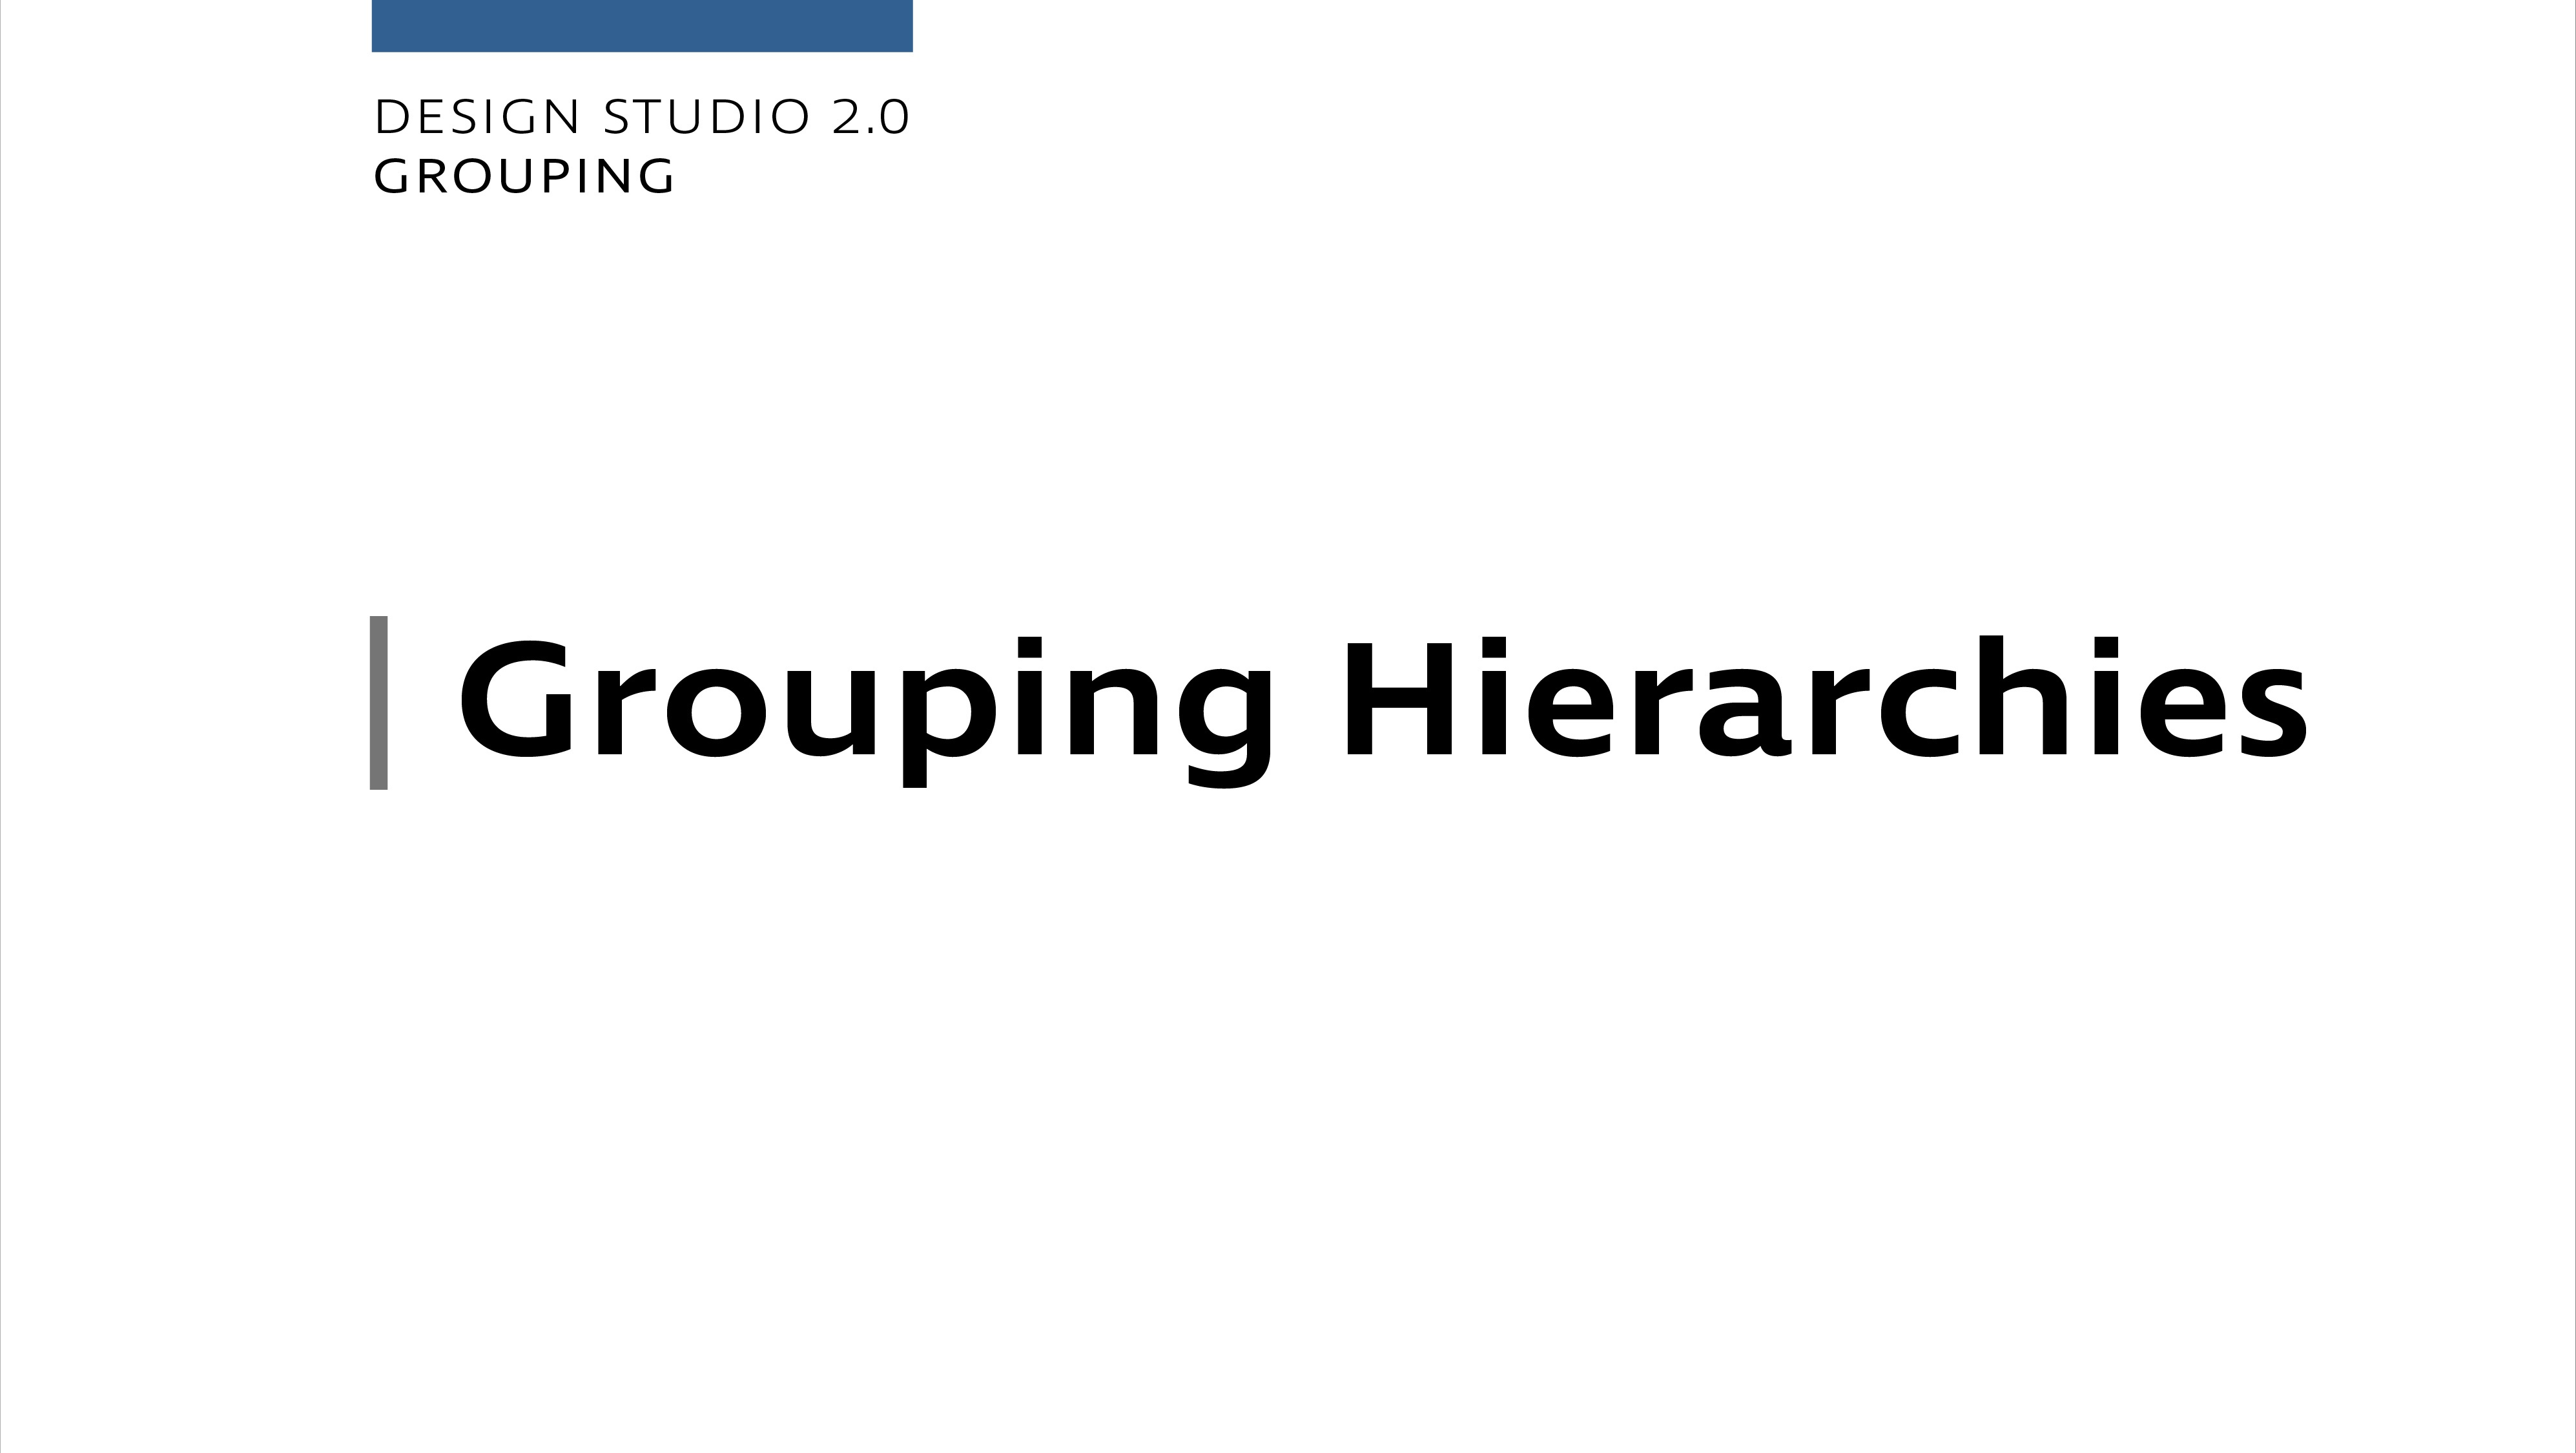 Design Studio 2.0 - Grouping Hierarchies